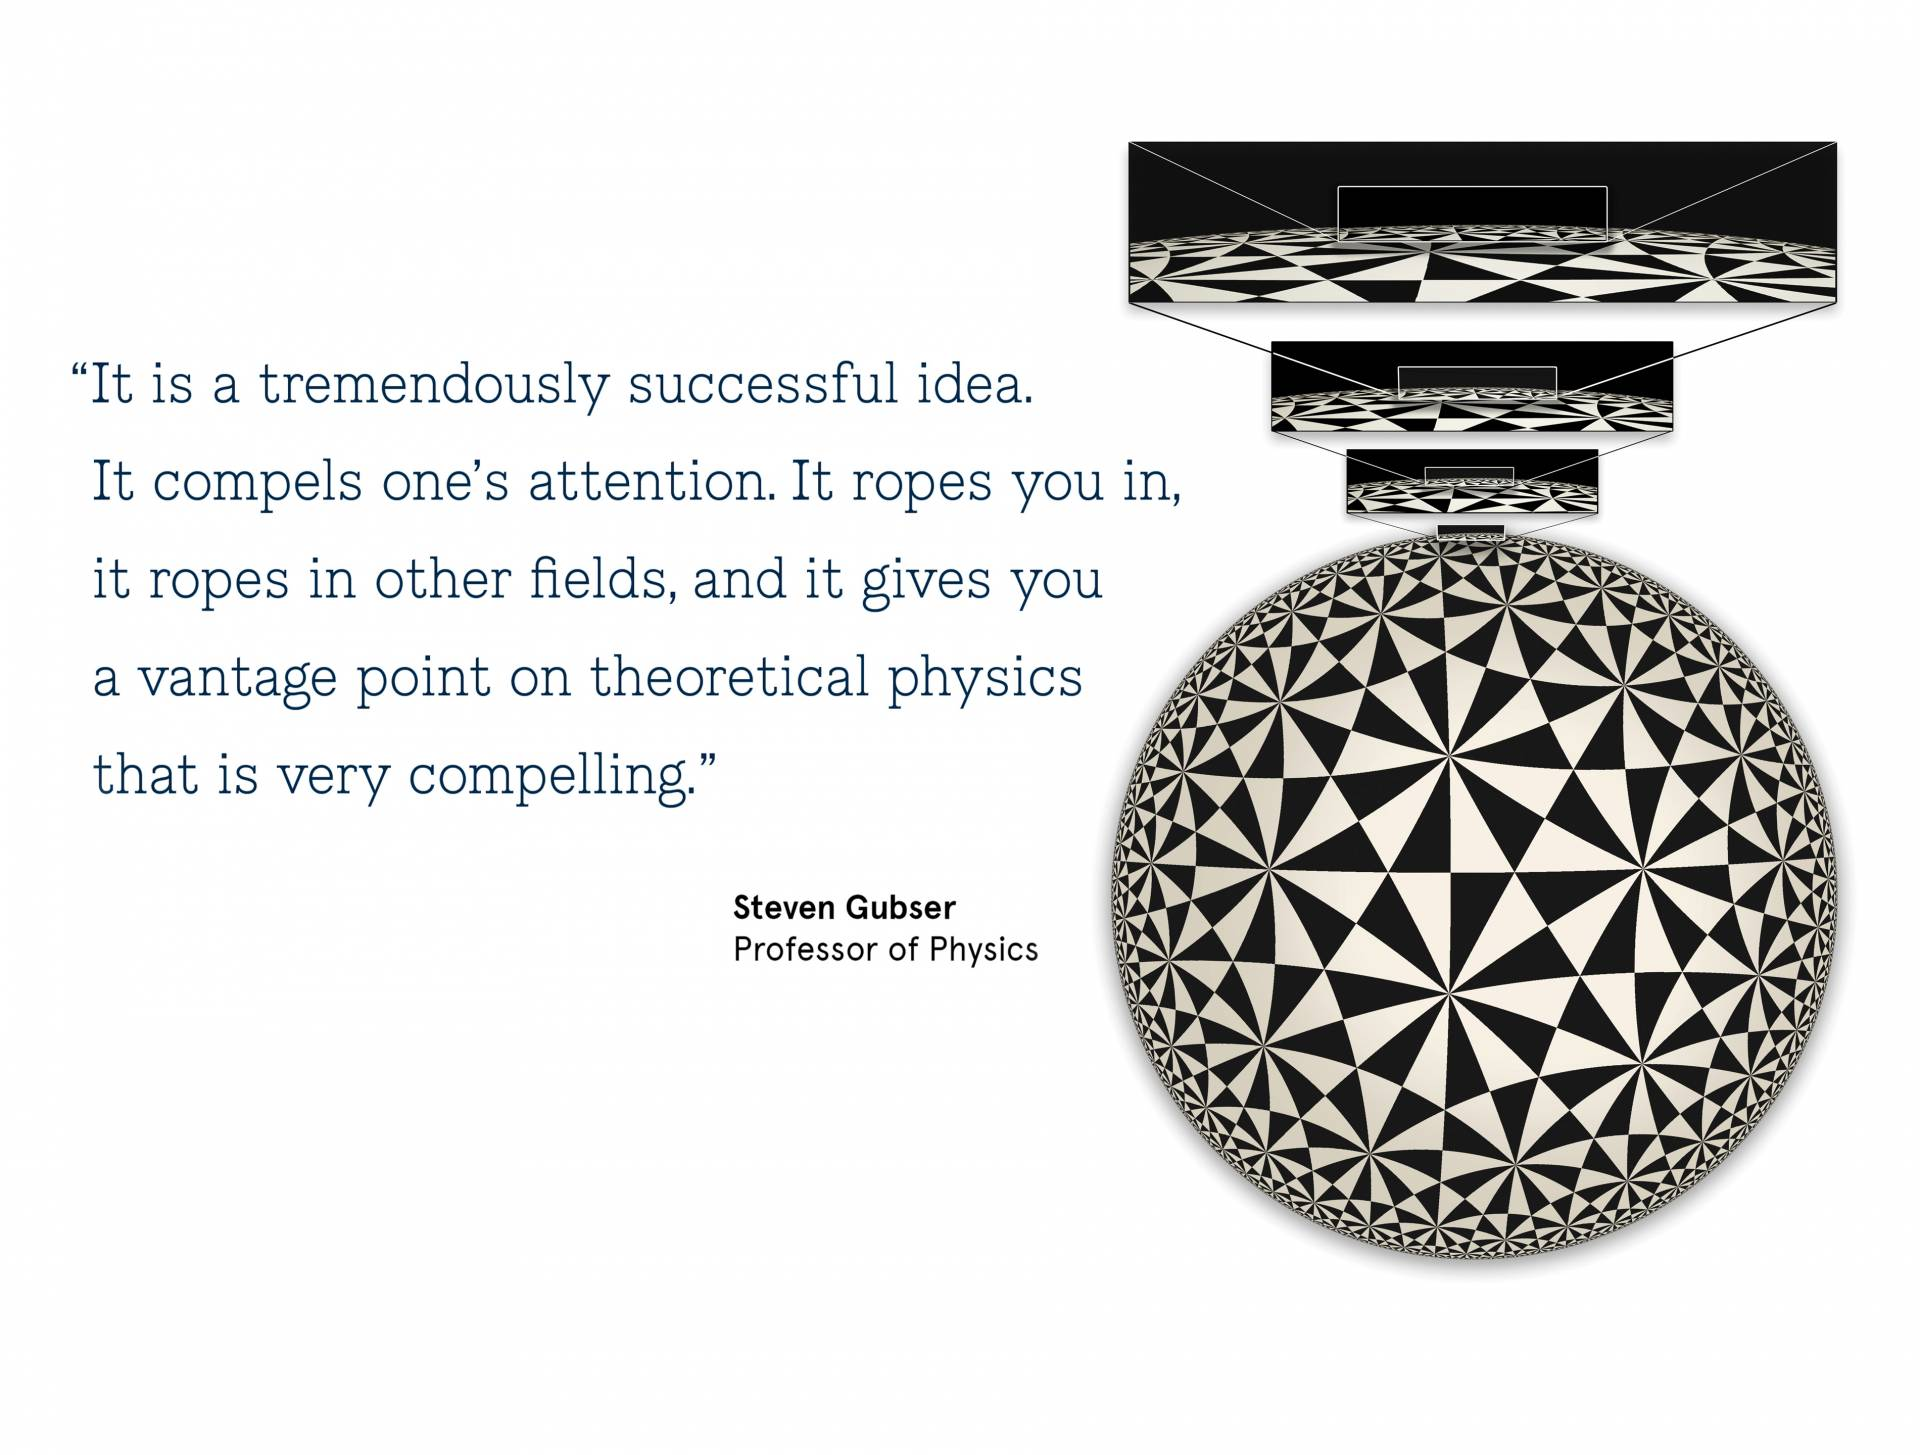 "Conceptual art with a quote from Steven Gubser, Professor of Physics: ""It is a tremendously successful idea. It compels one's attention. It ropes you in,  	it ropes in other fields, and it gives you a vantage point on theoretical physics that is very compelling."""